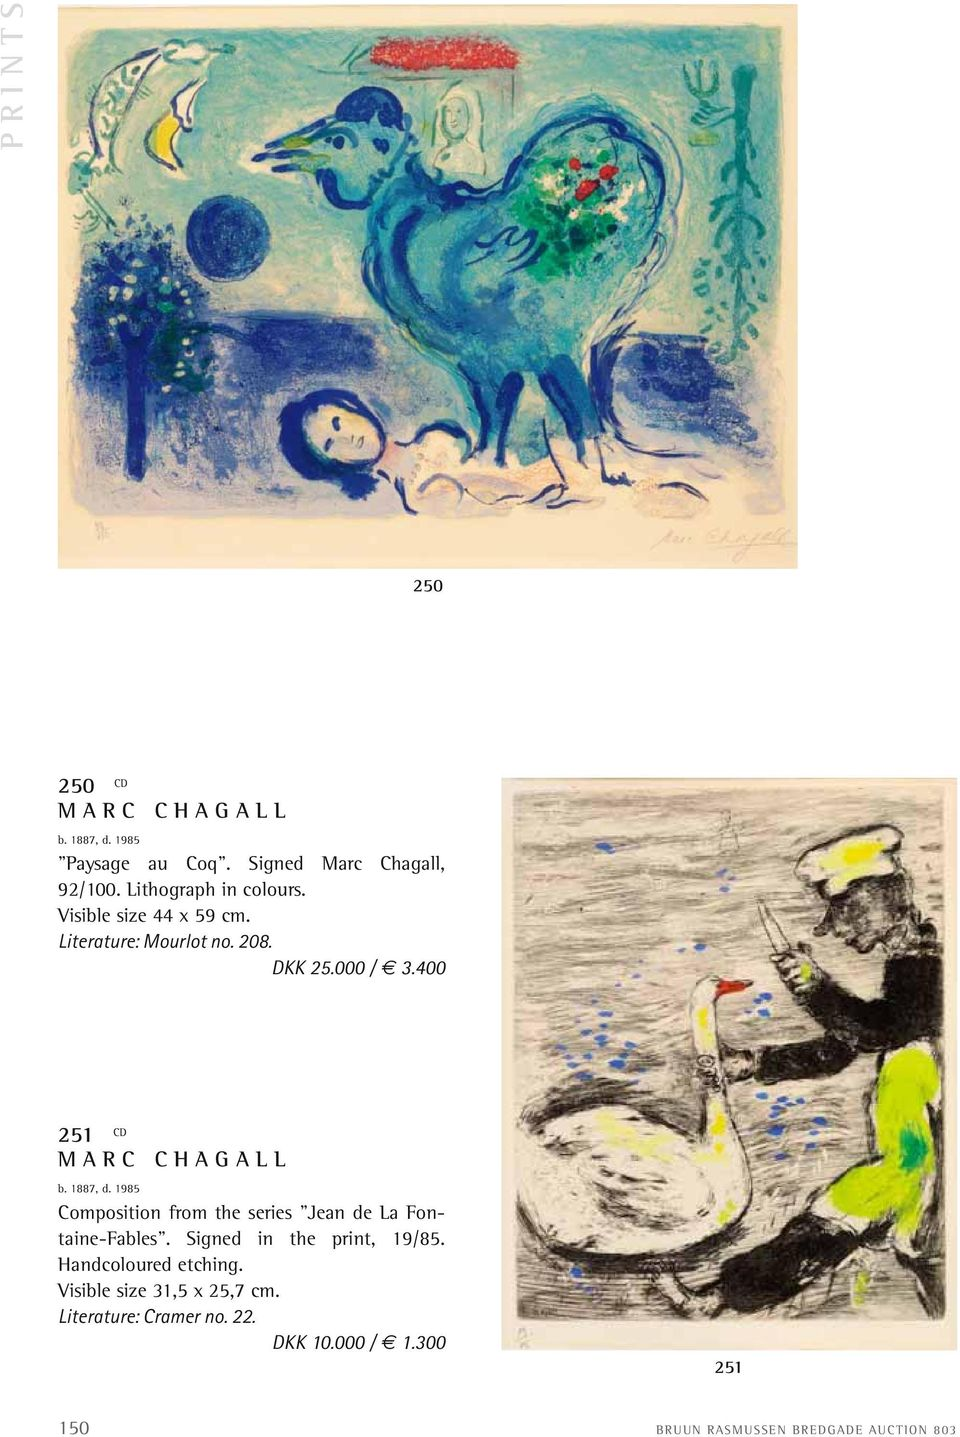 "400 251 CD MARC CHAGALL b. 1887, d. 1985 Composition from the series ""Jean de La Fontaine-Fables""."